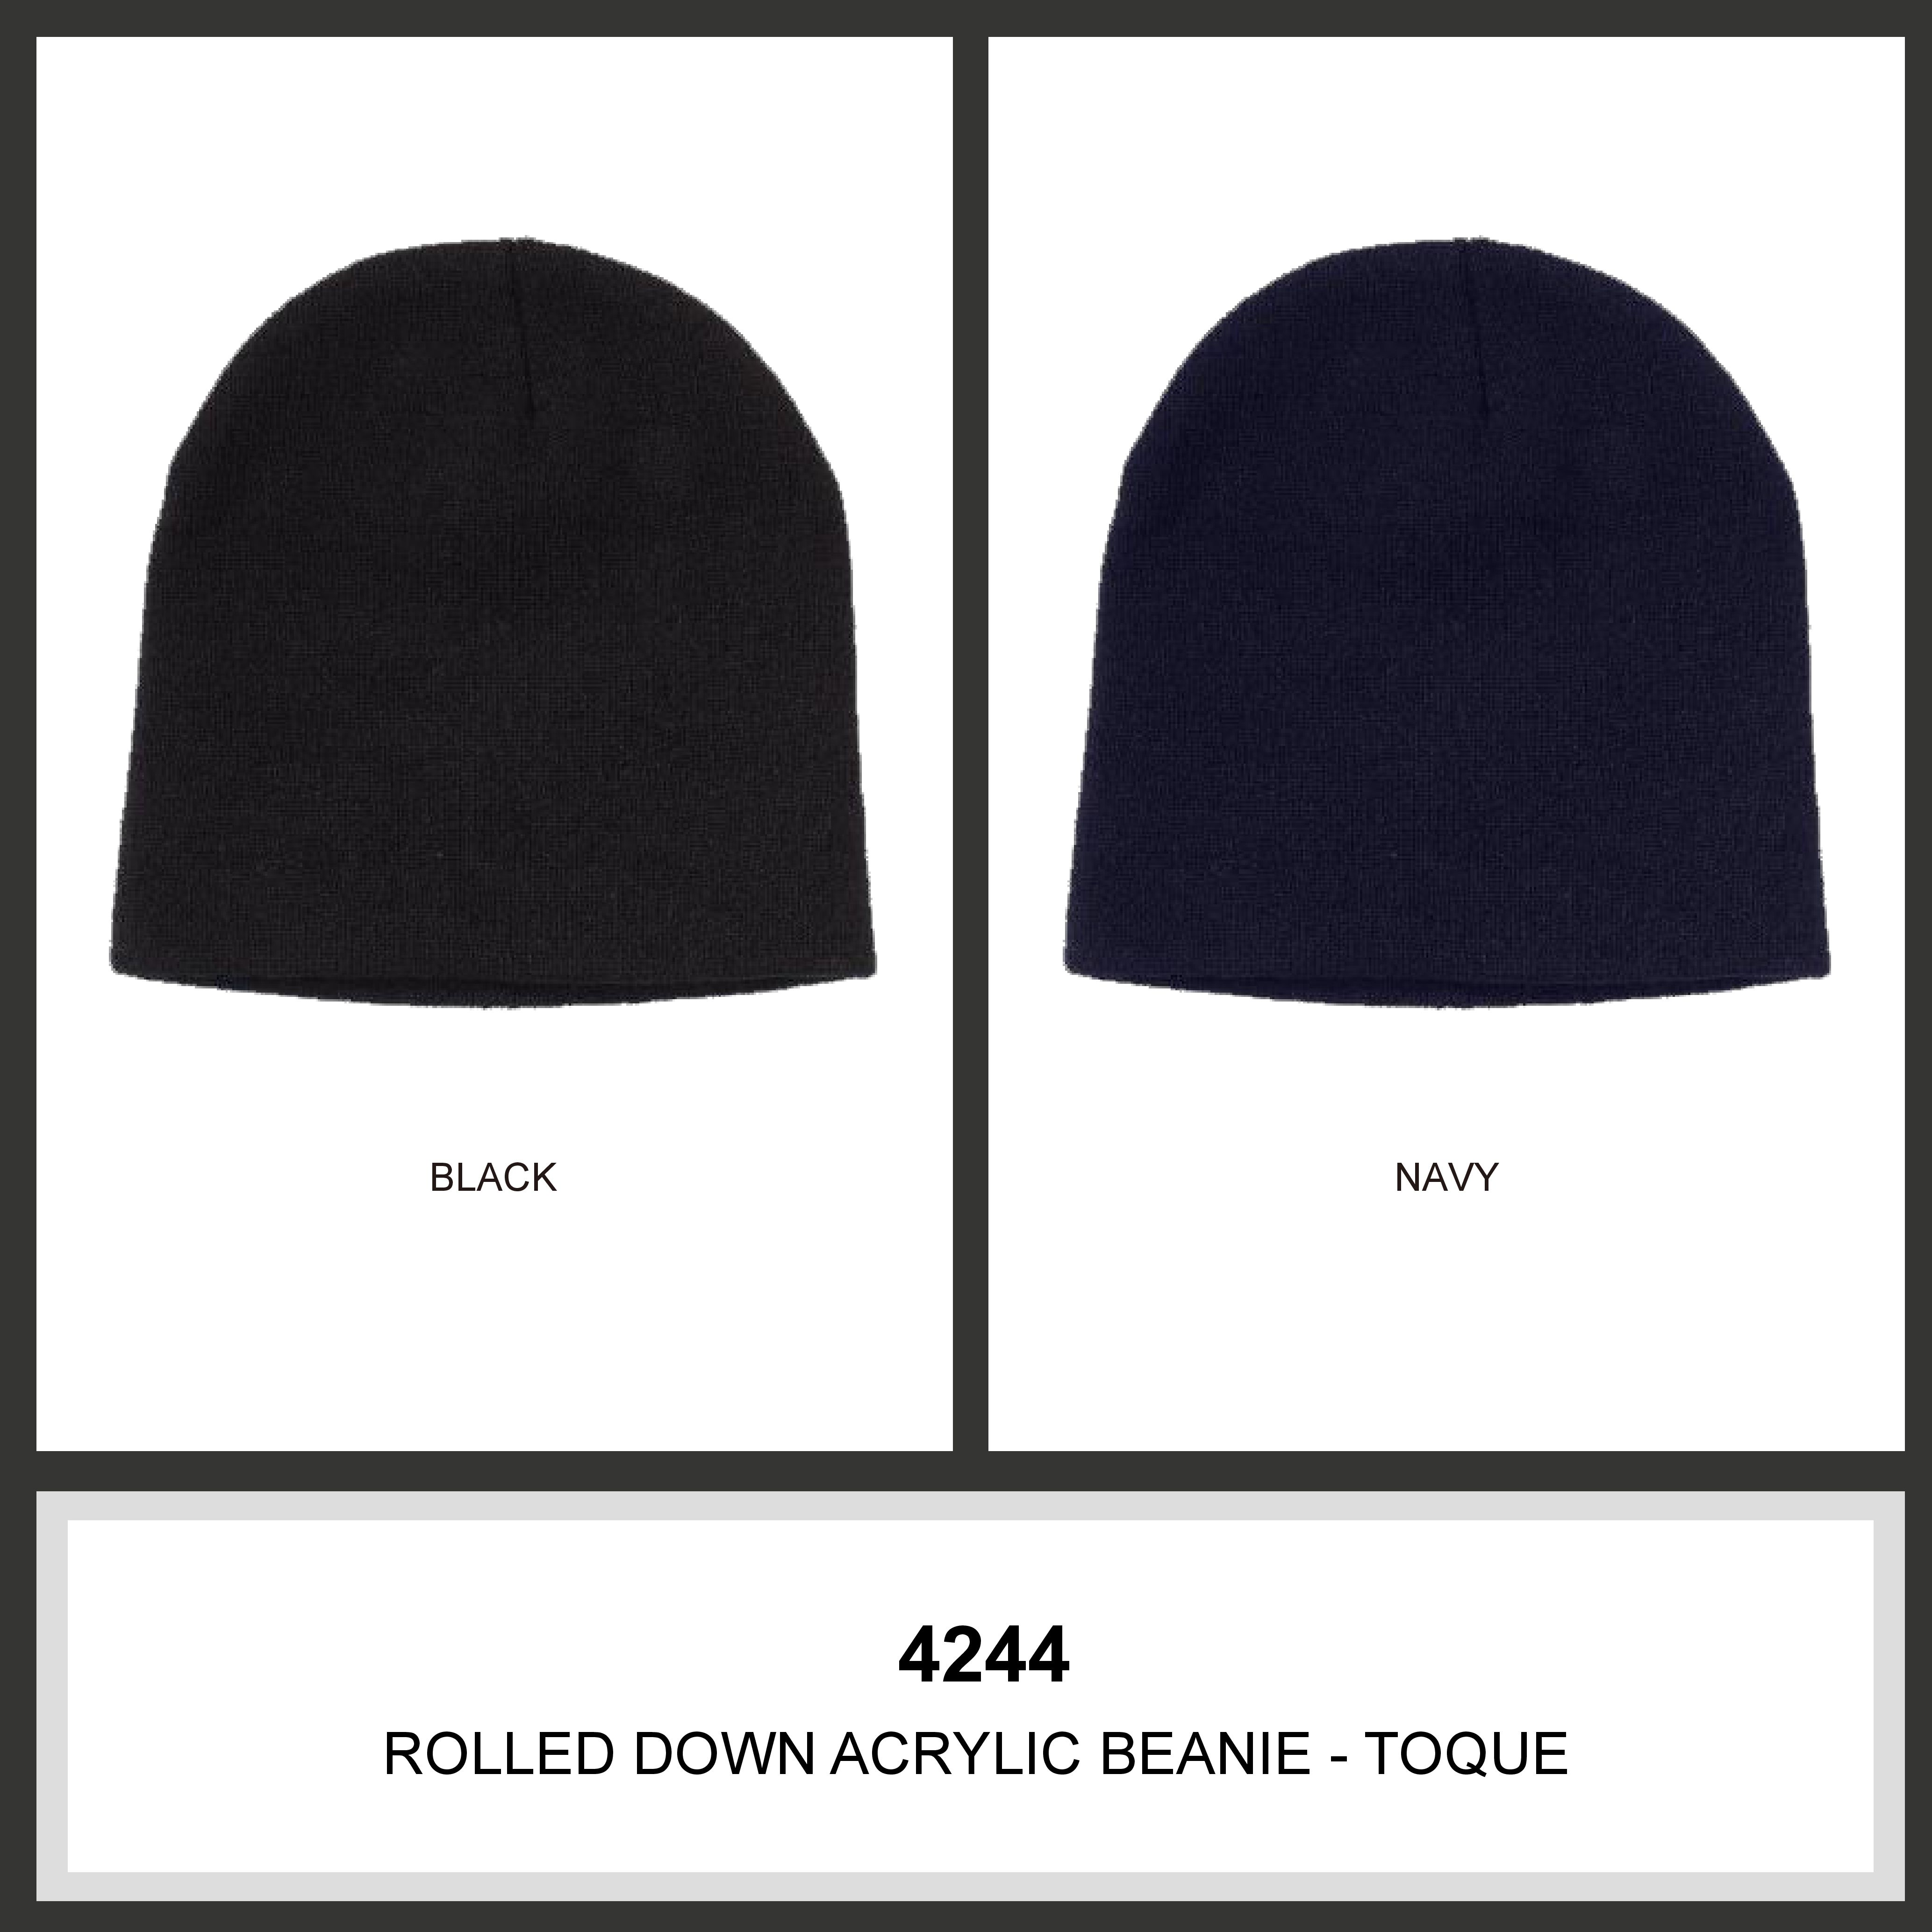 ee08fb443 Rolled Down Acrylic Beanie - Toque